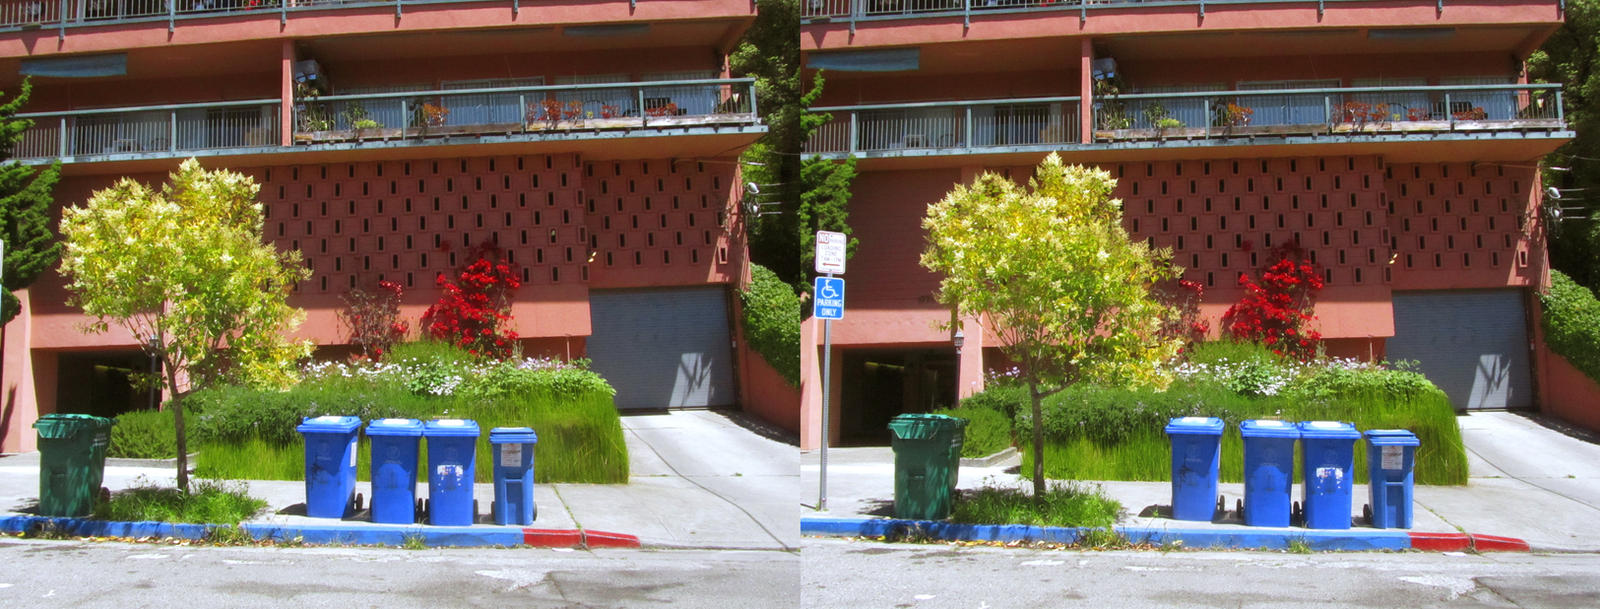 Stereograph - Recycling Bins by alanbecker